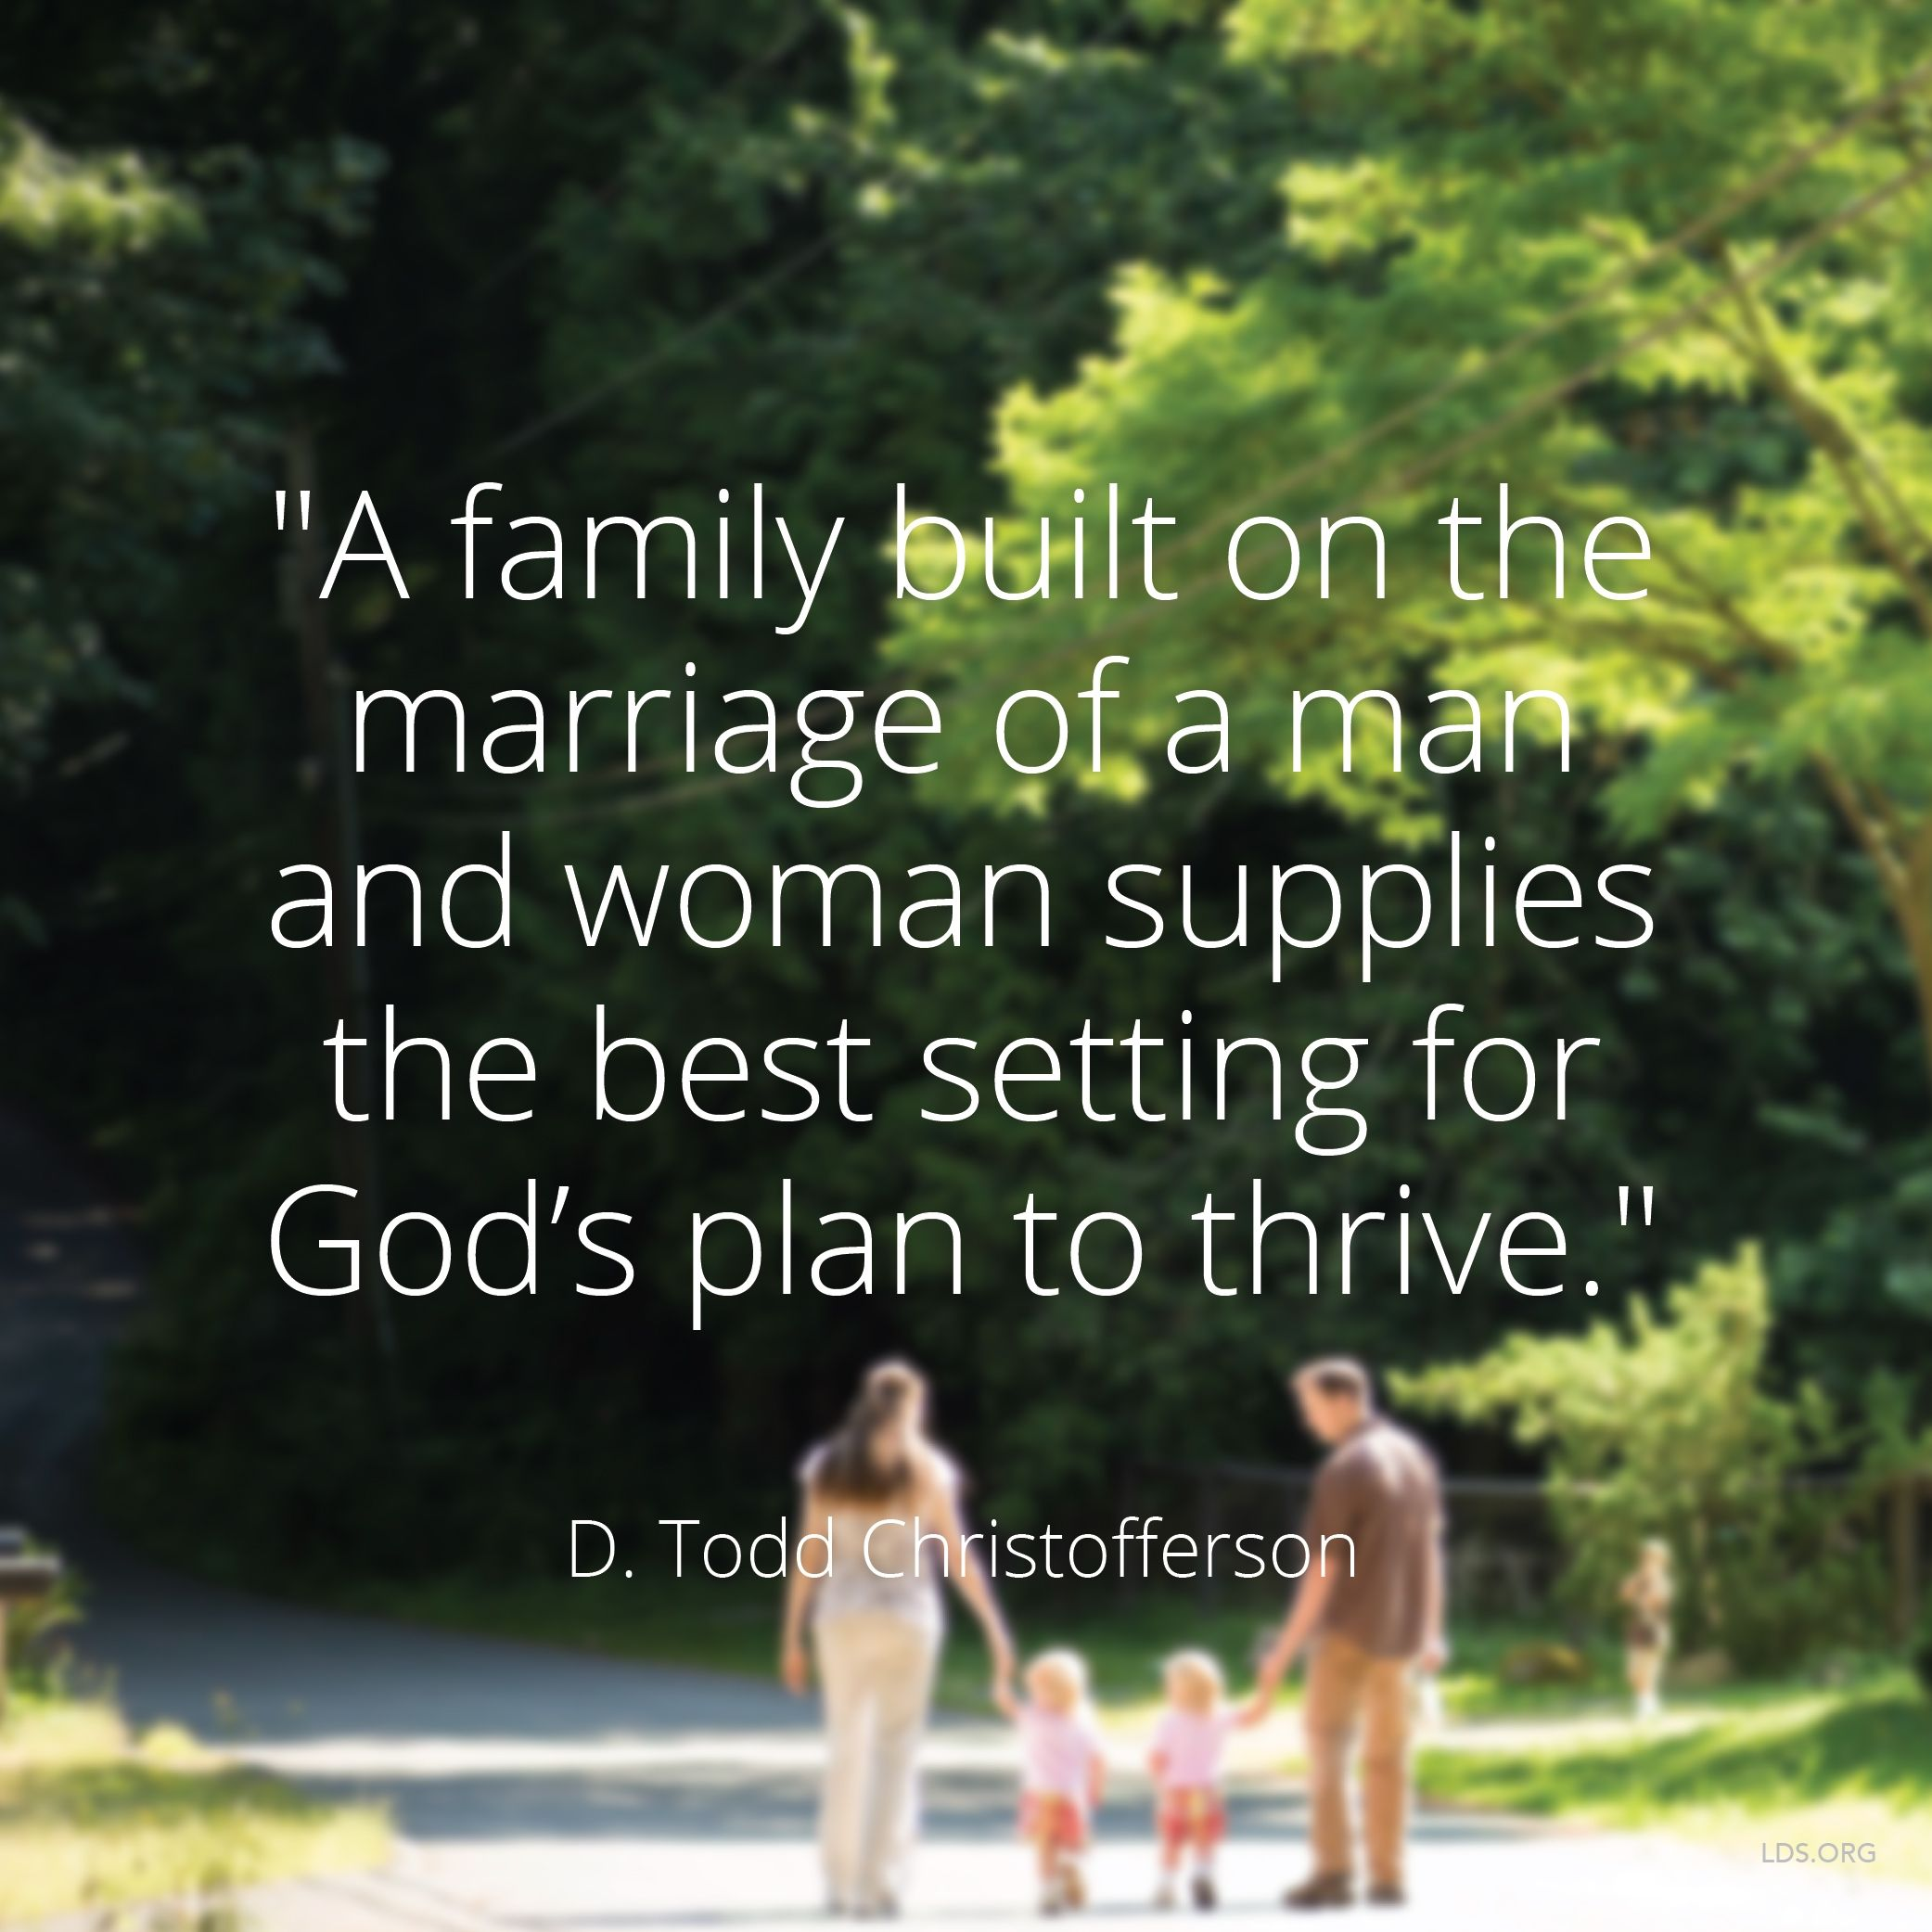 """""""A family built on the marriage of a man and woman supplies the best setting for God's plan to thrive.""""—Elder D. Todd Christofferson, """"Why Marriage, Why Family"""""""